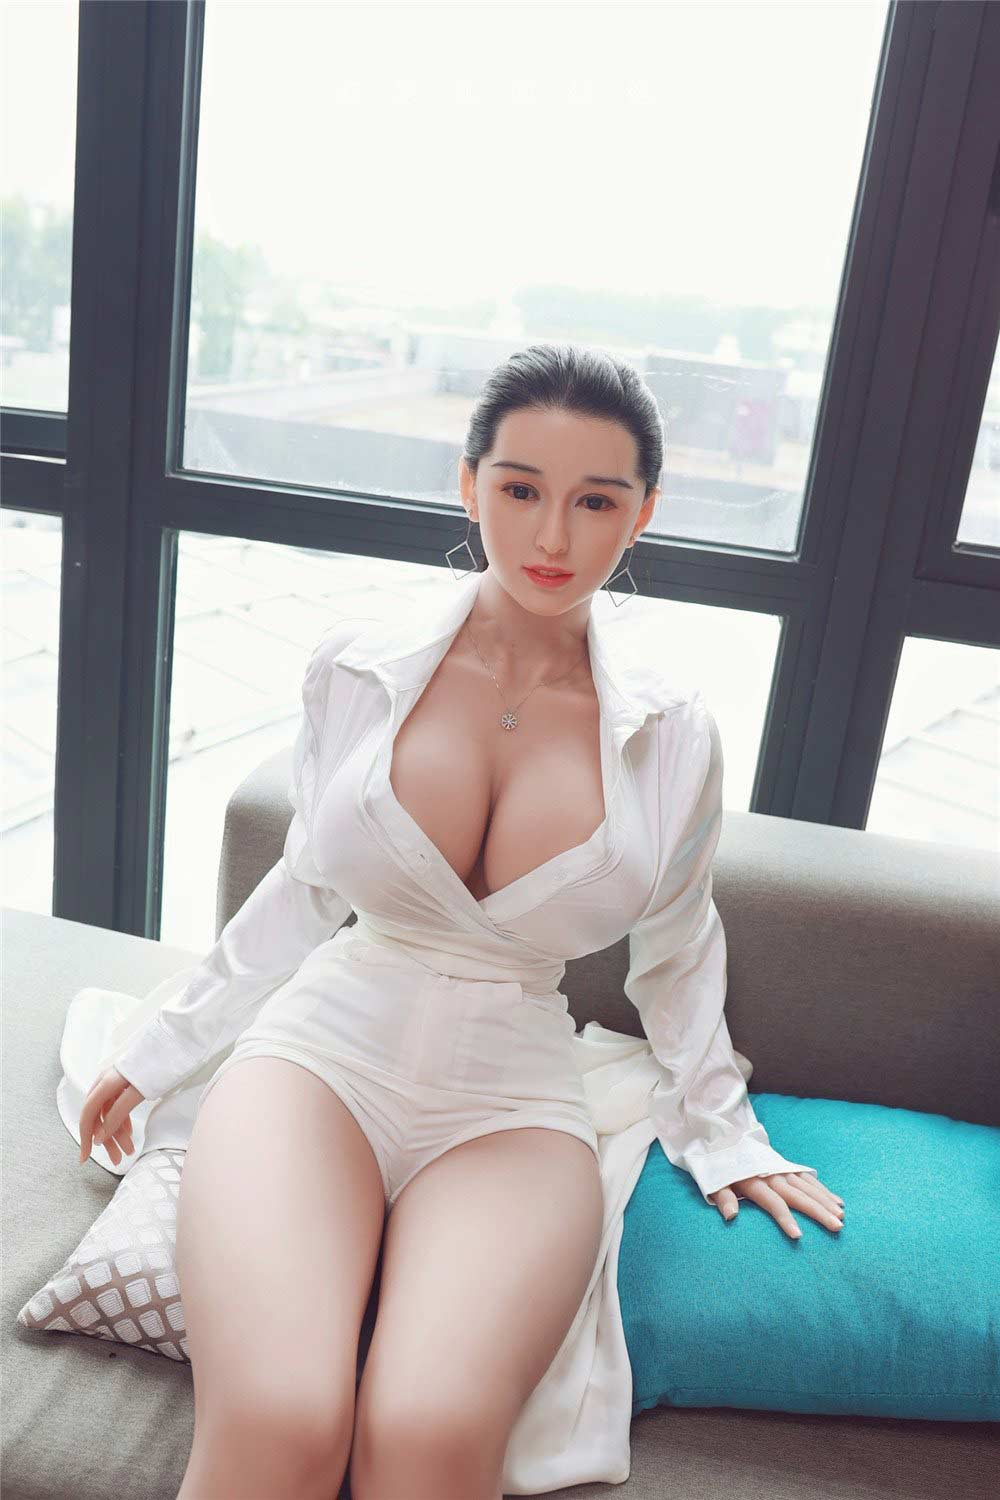 Sex doll sitting on pillow